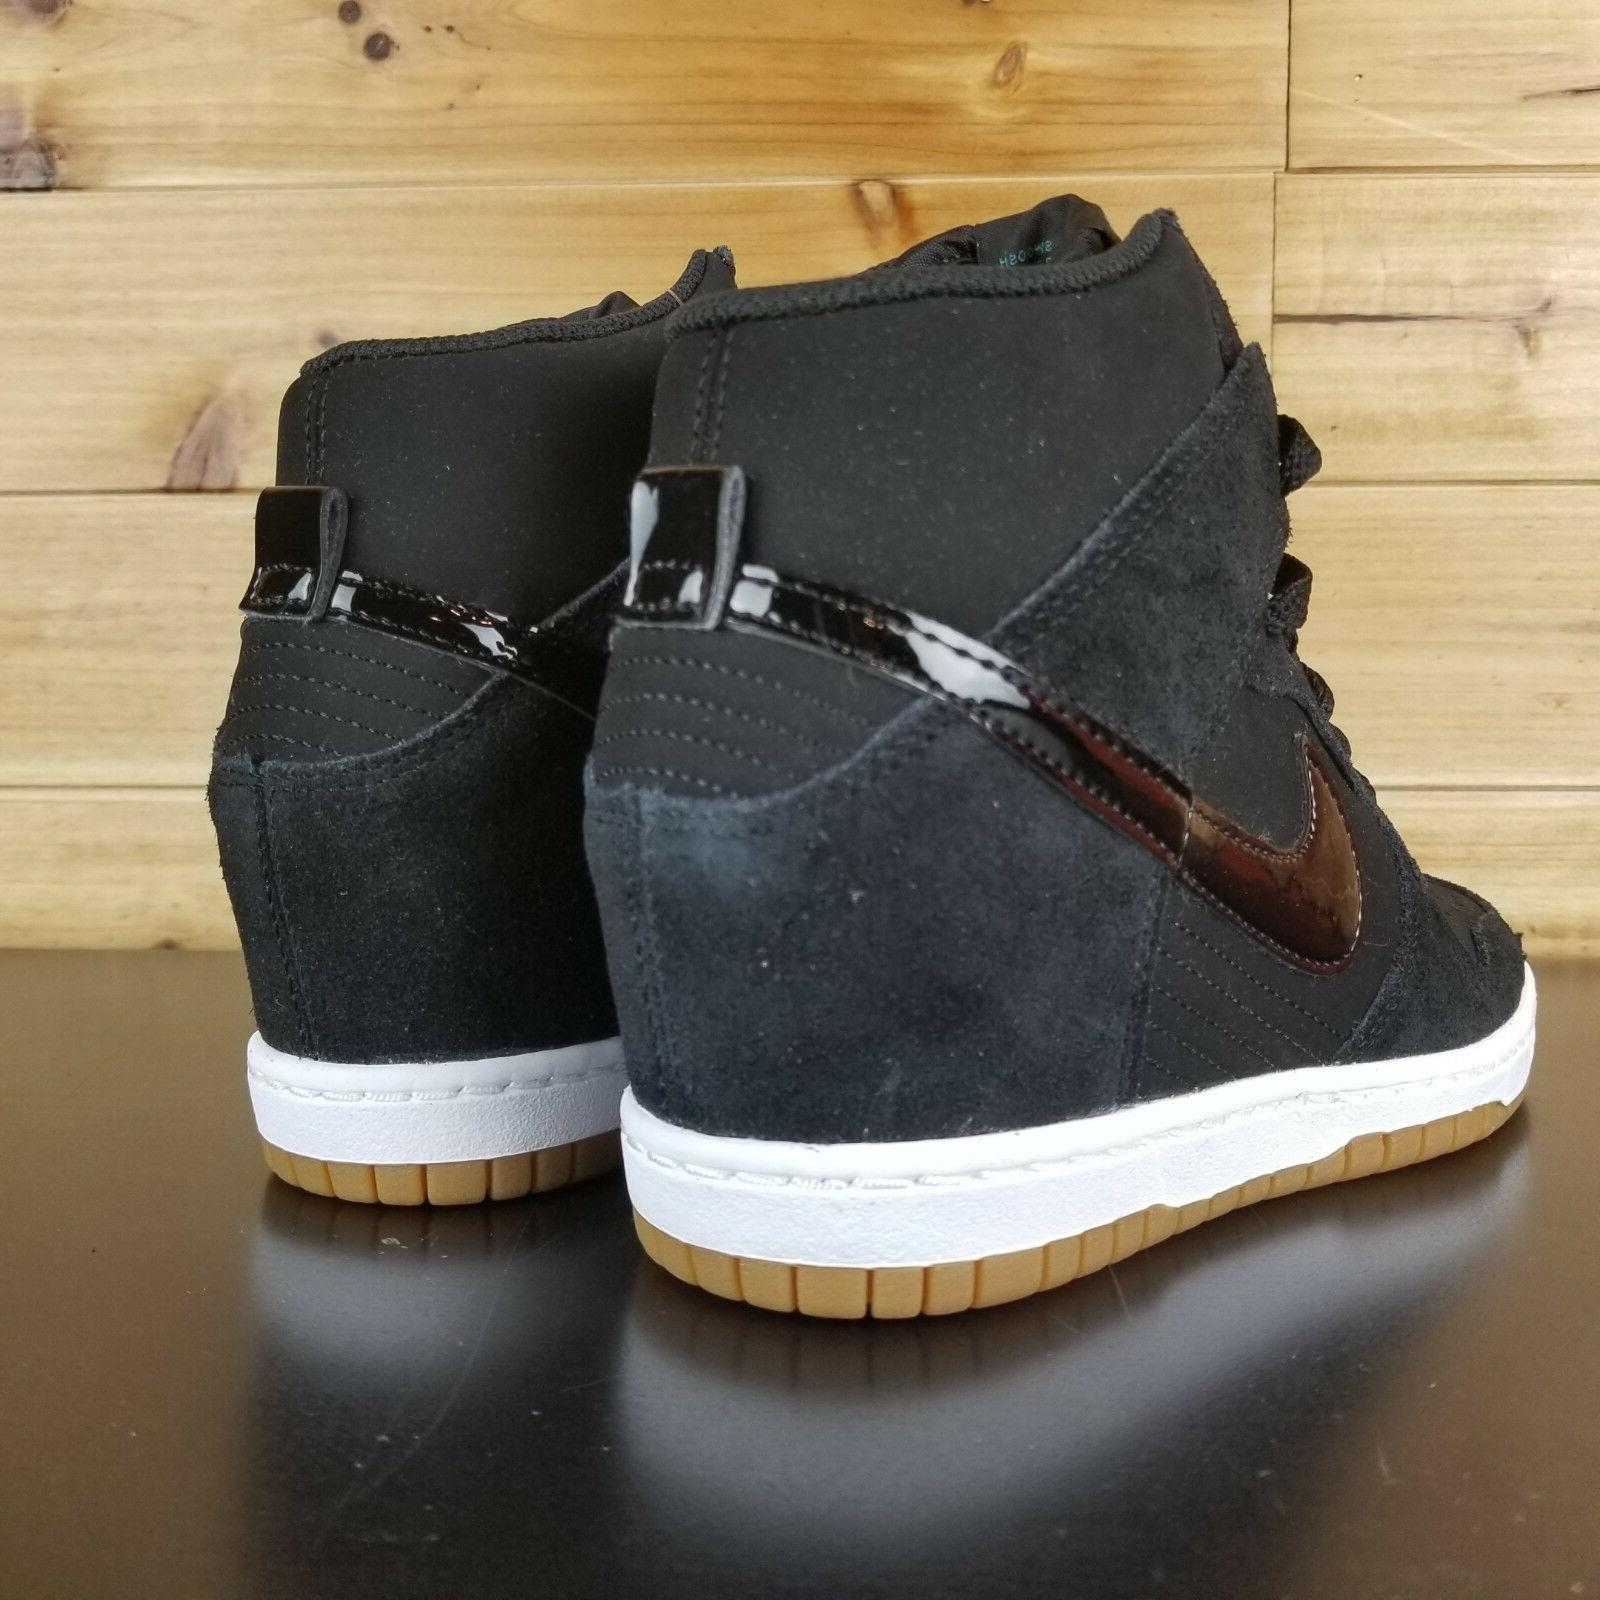 Nike Dunk Essential Shoes Gum